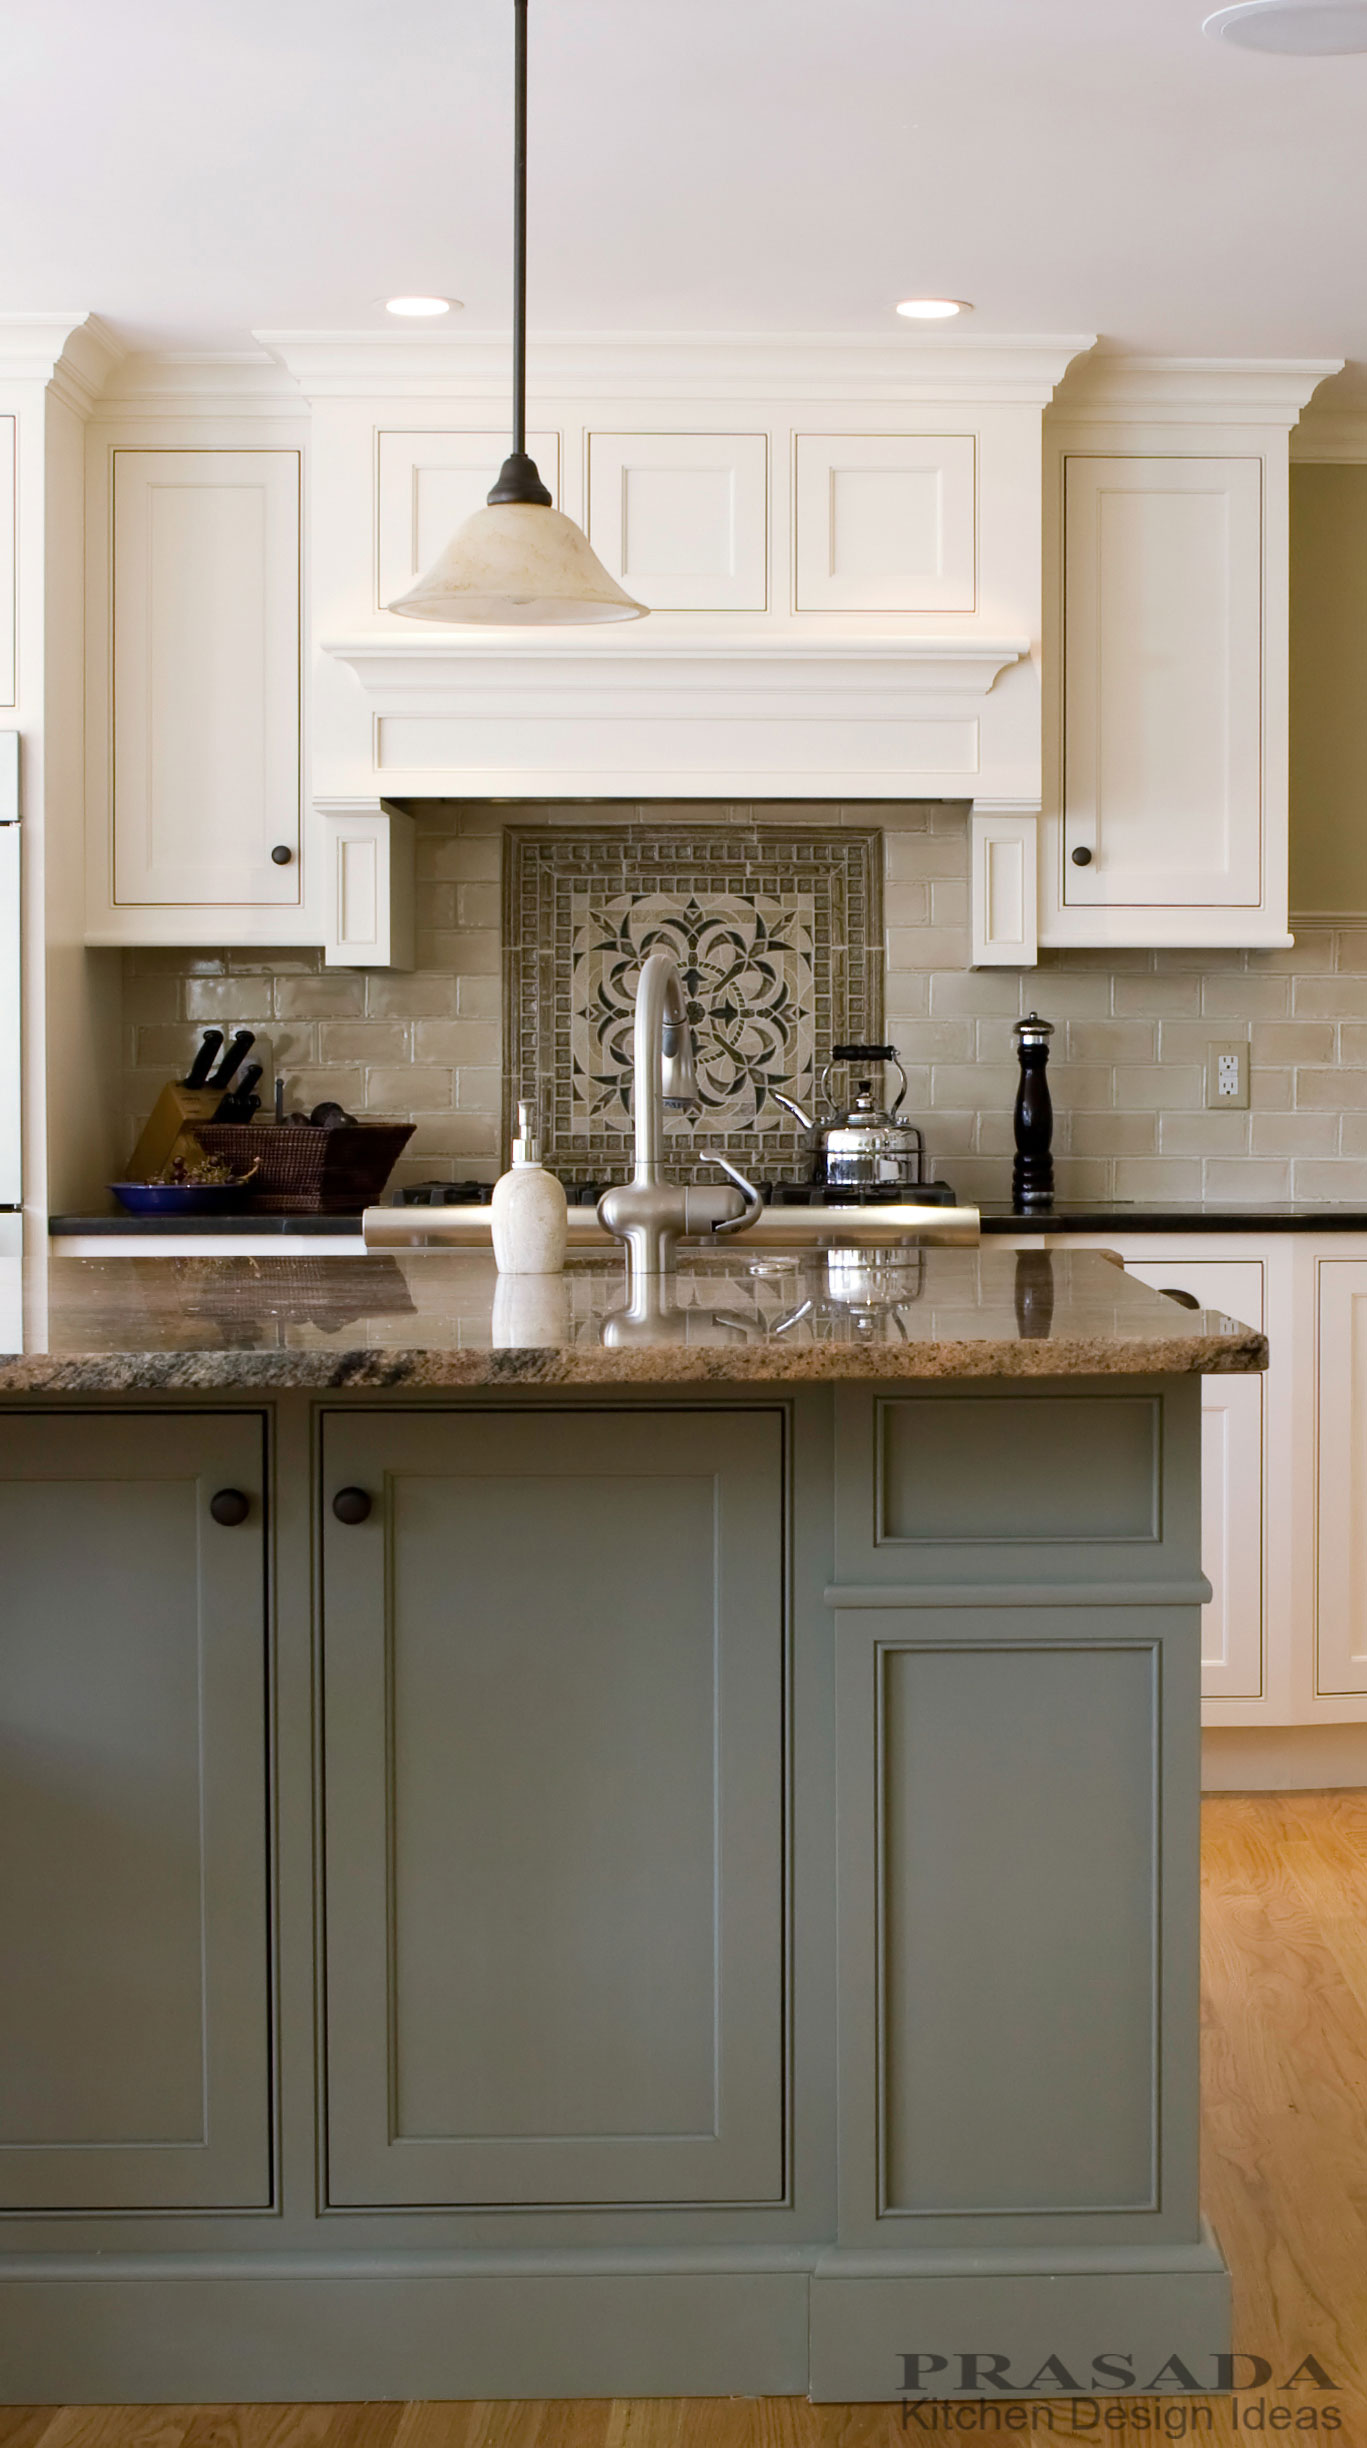 10 Kitchen Cabinet Tips: Kitchen Cabinetry Oakville Ontario